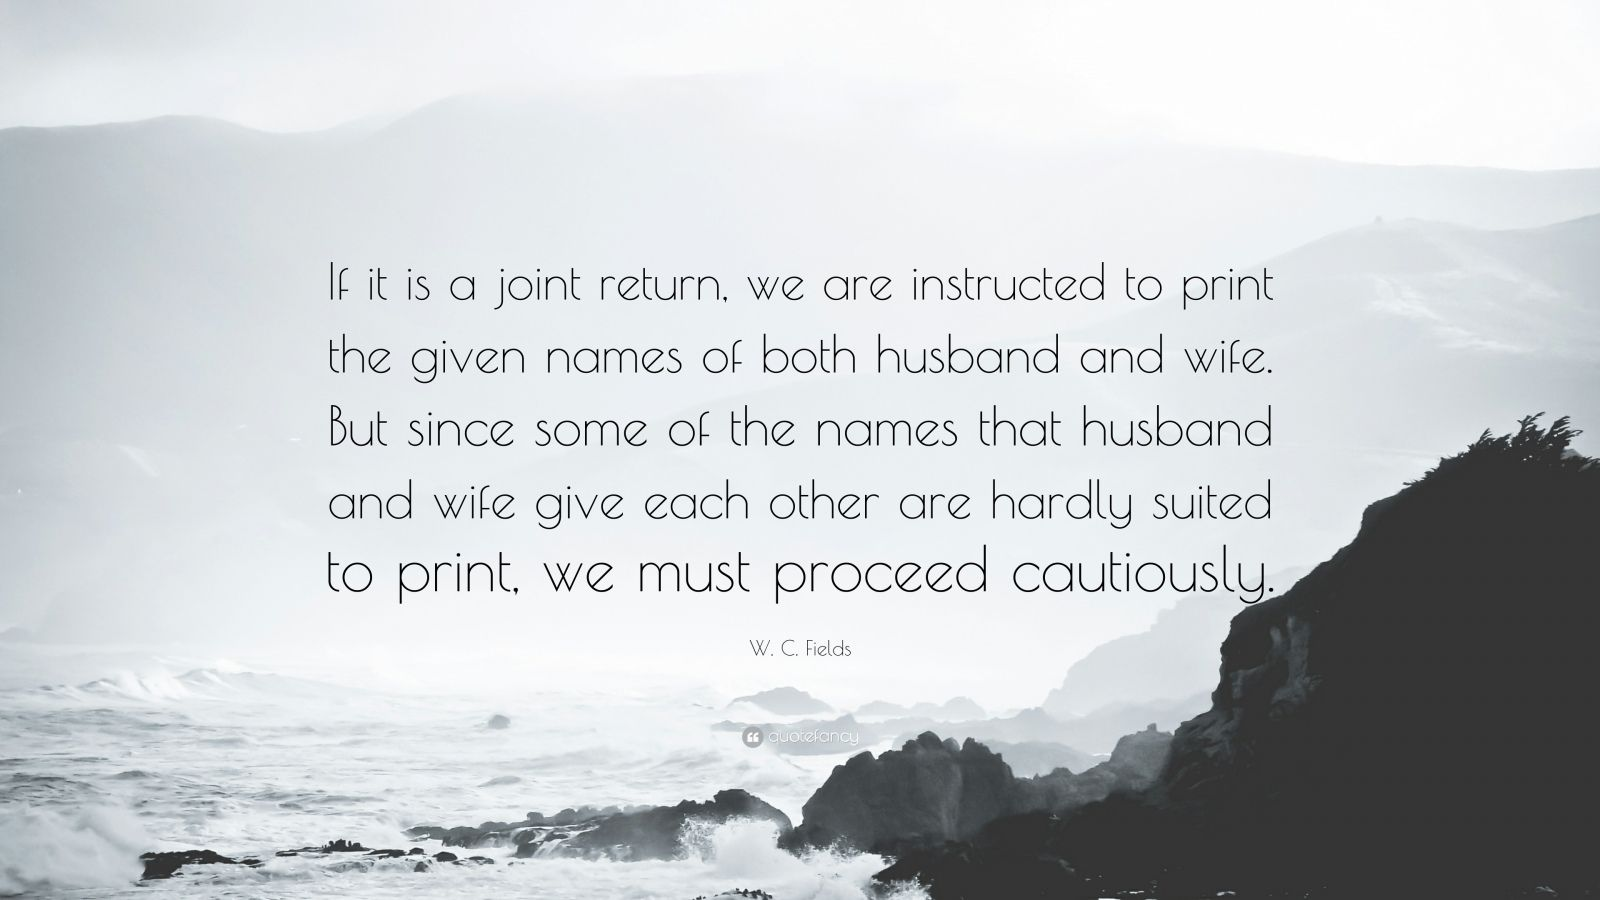 """W. C. Fields Quote: """"If it is a joint return, we are instructed to print the given names of both husband and wife. But since some of the names that husband and wife give each other are hardly suited to print, we must proceed cautiously."""""""